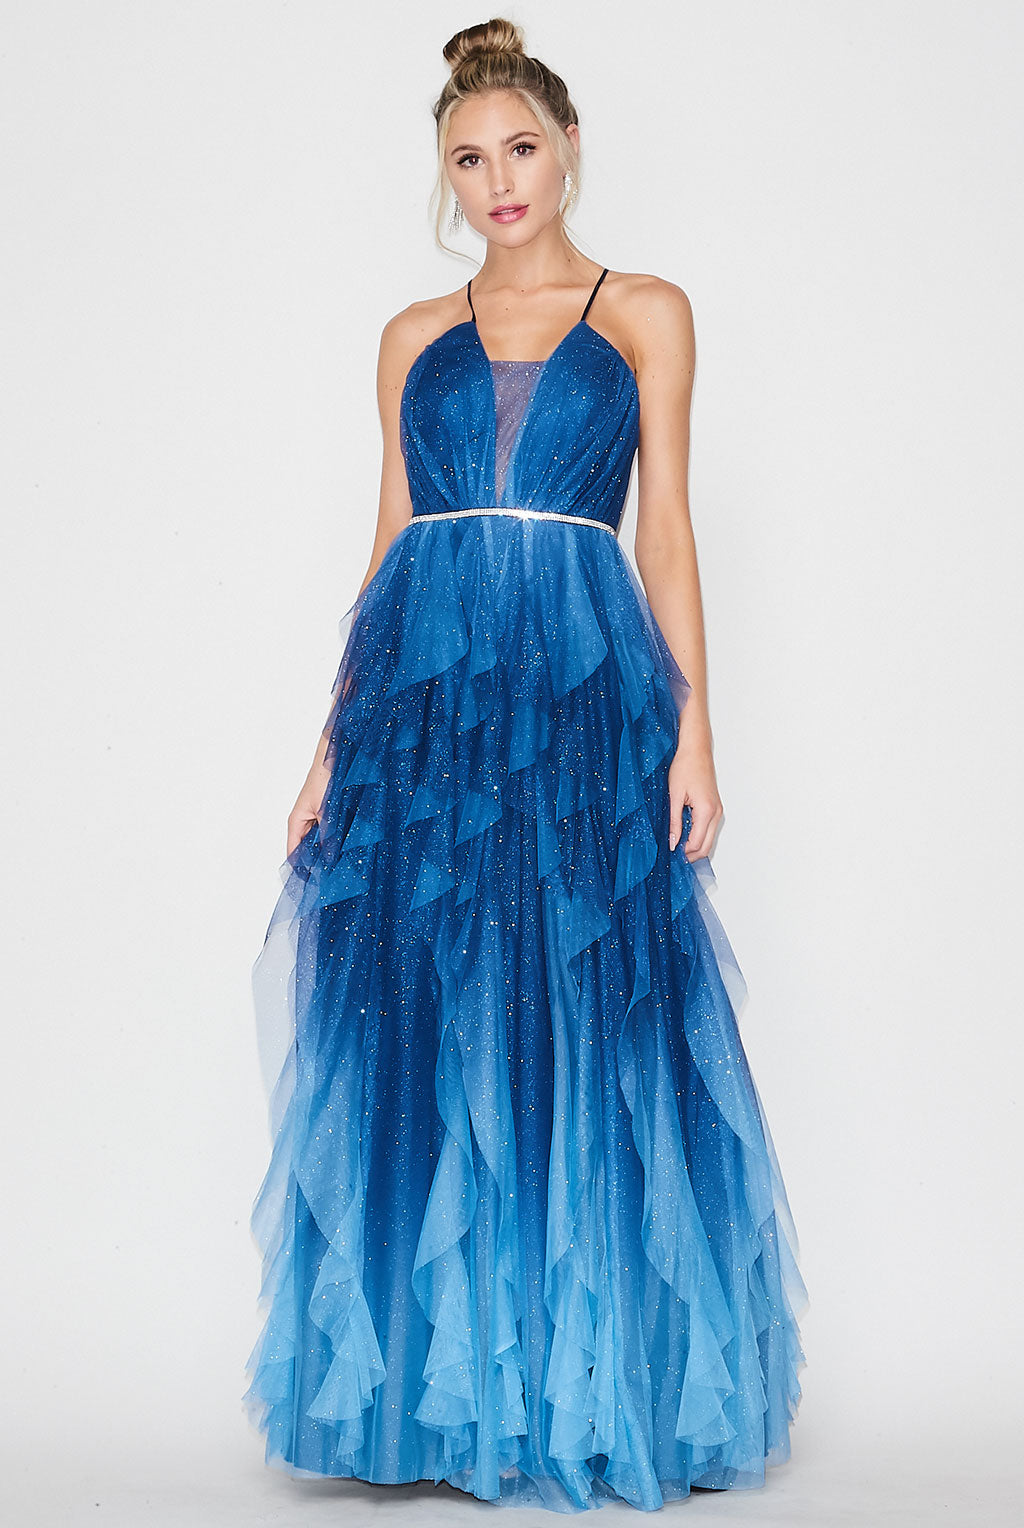 Teeze Me | Spaghetti Strap Ombre Long Prom Dress | Blue Ombre